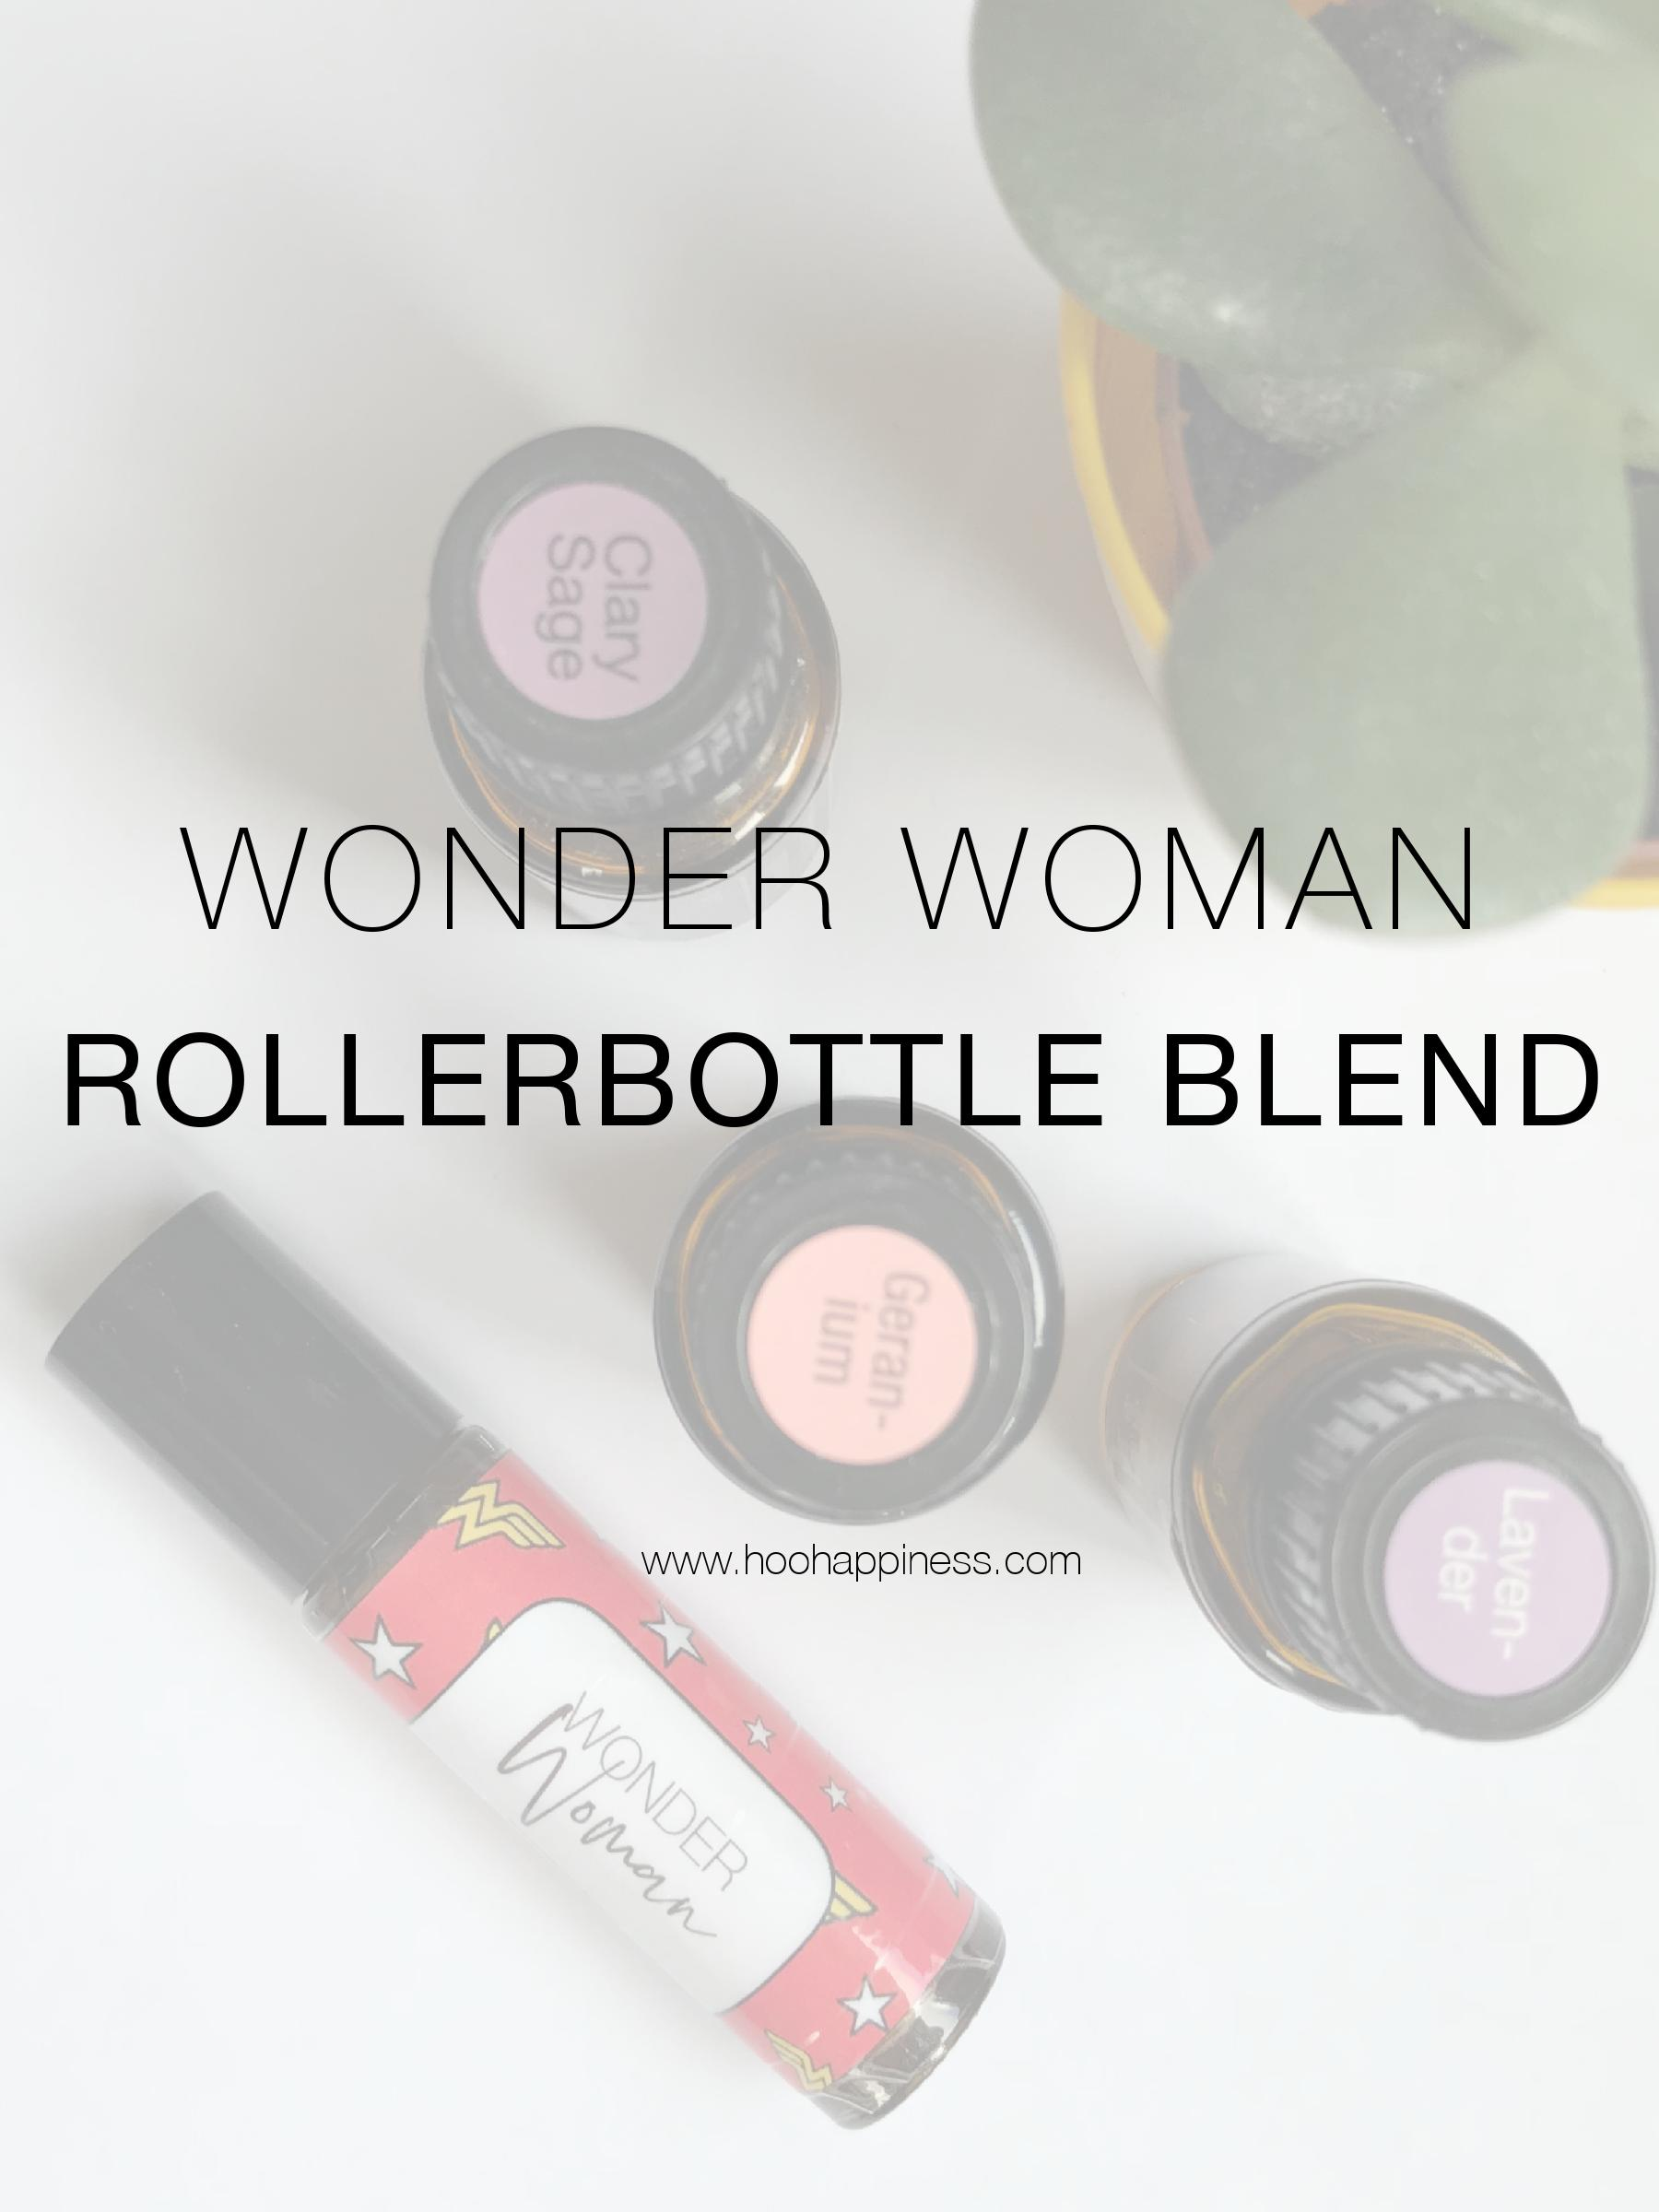 Wonder Woman Essential Oil Rollerbottle Blend HOO Happiness Blog, FREE Downloadable label